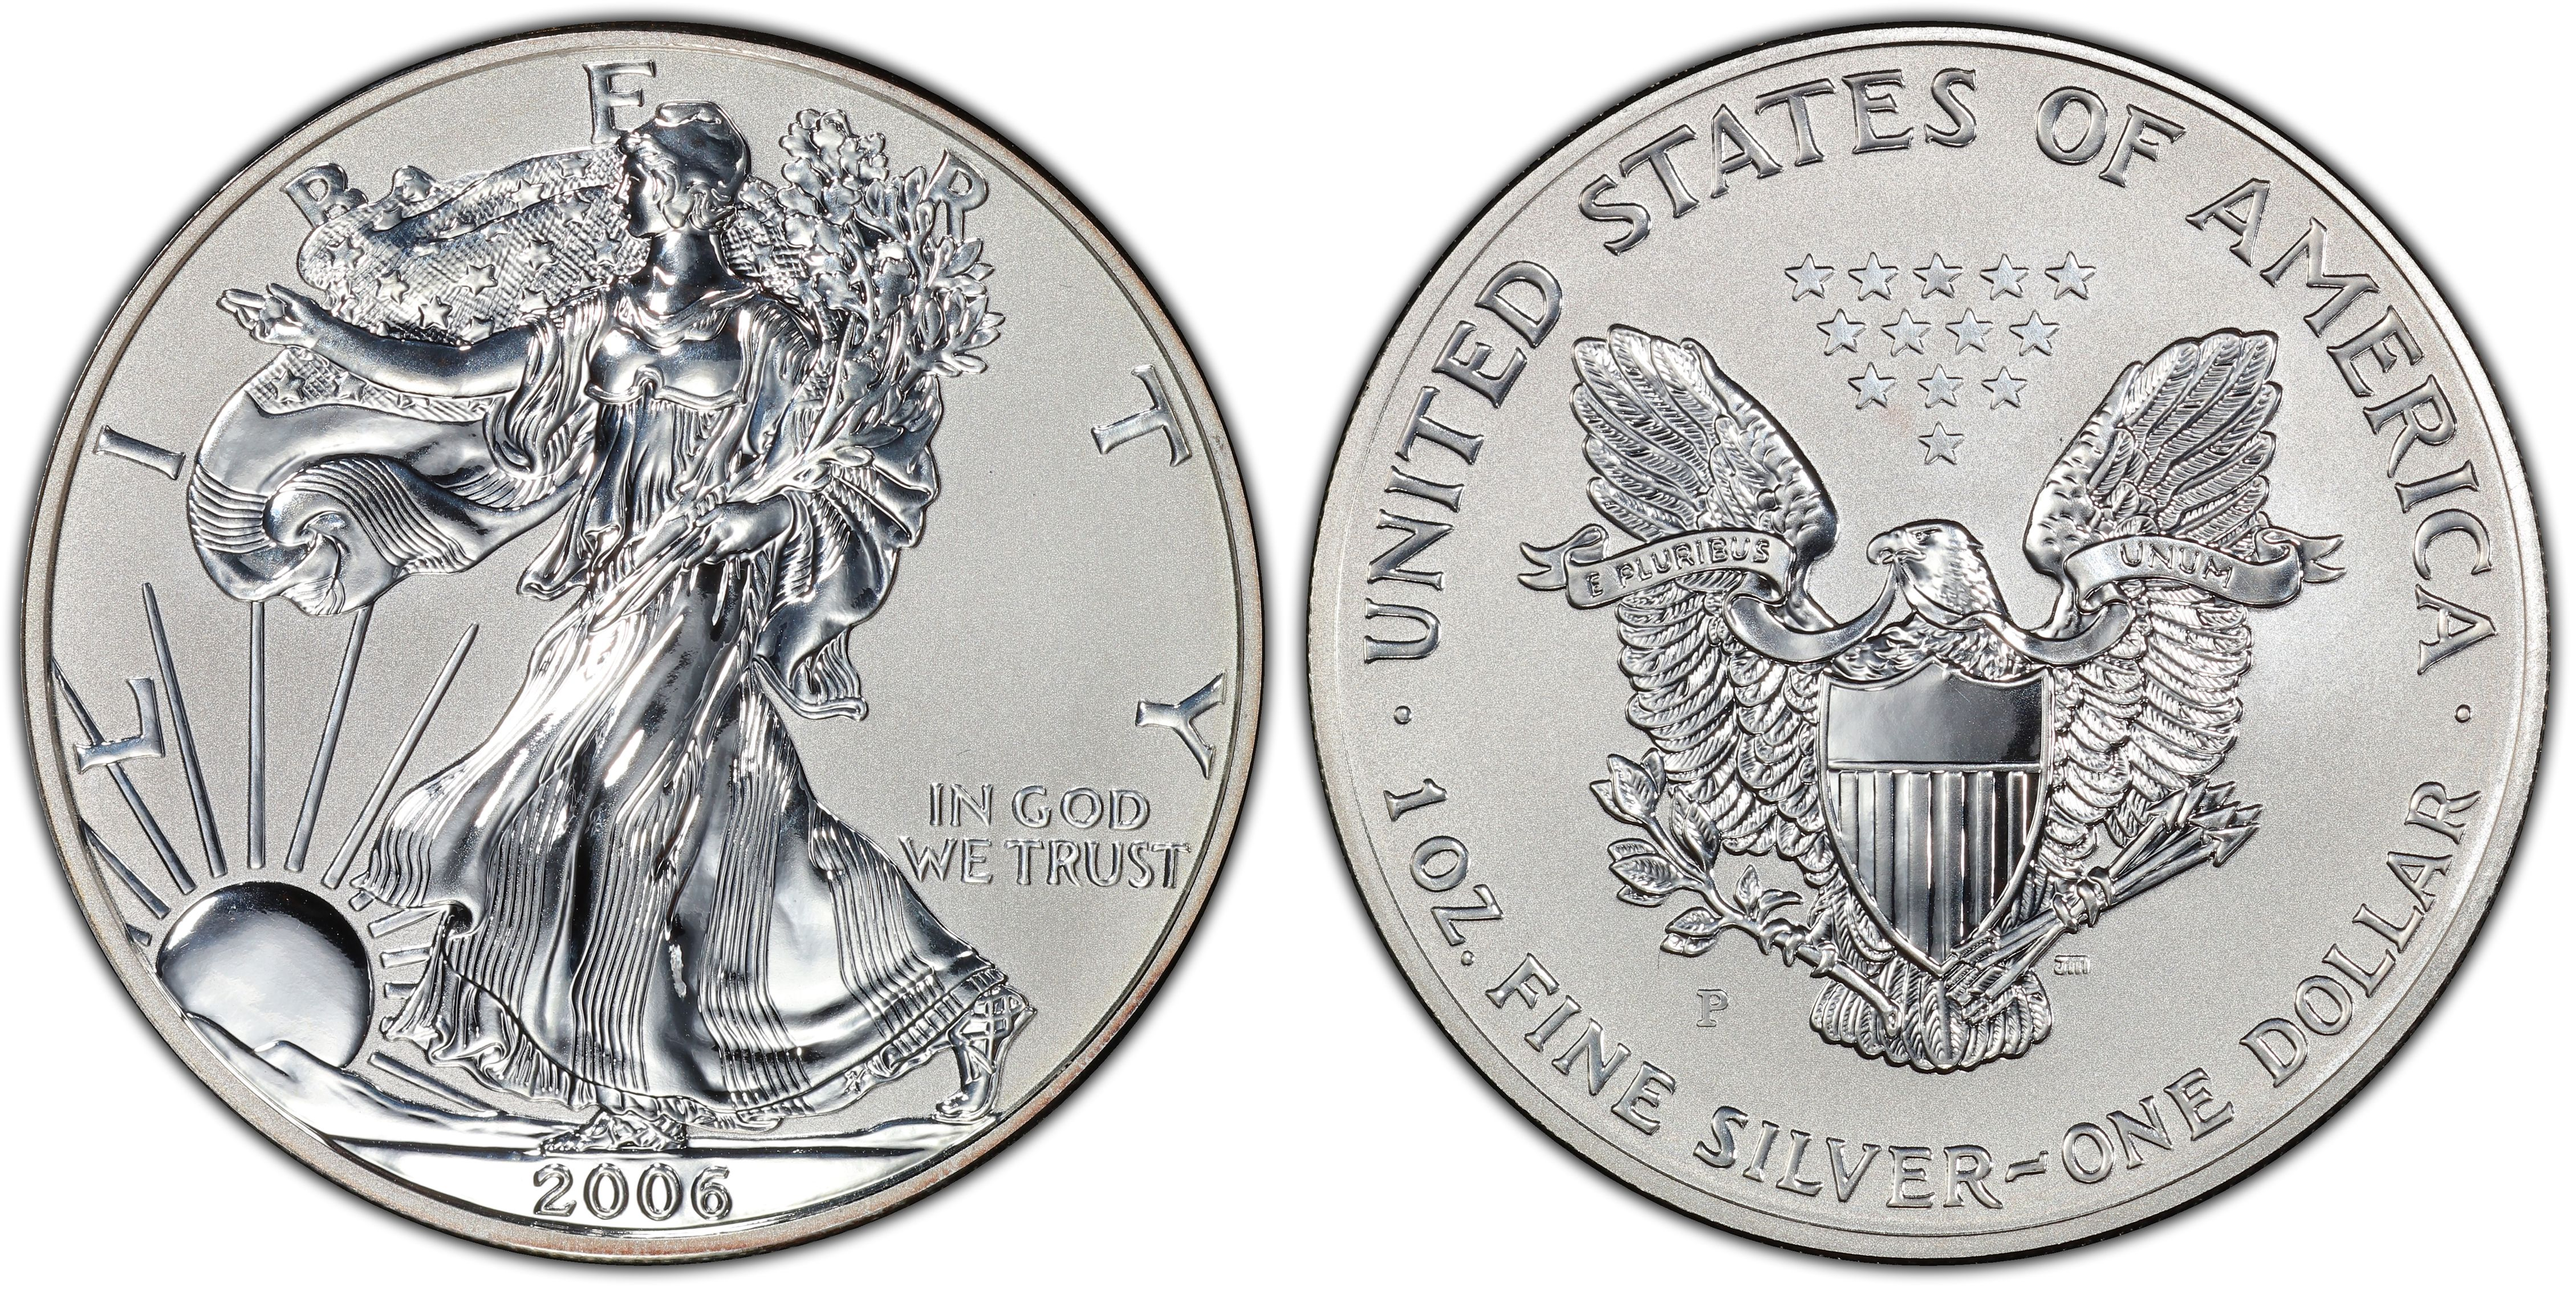 2006 American Eagle Silver One Ounce Enhanced Reverse Proof Coin Obverse Hi Res Image